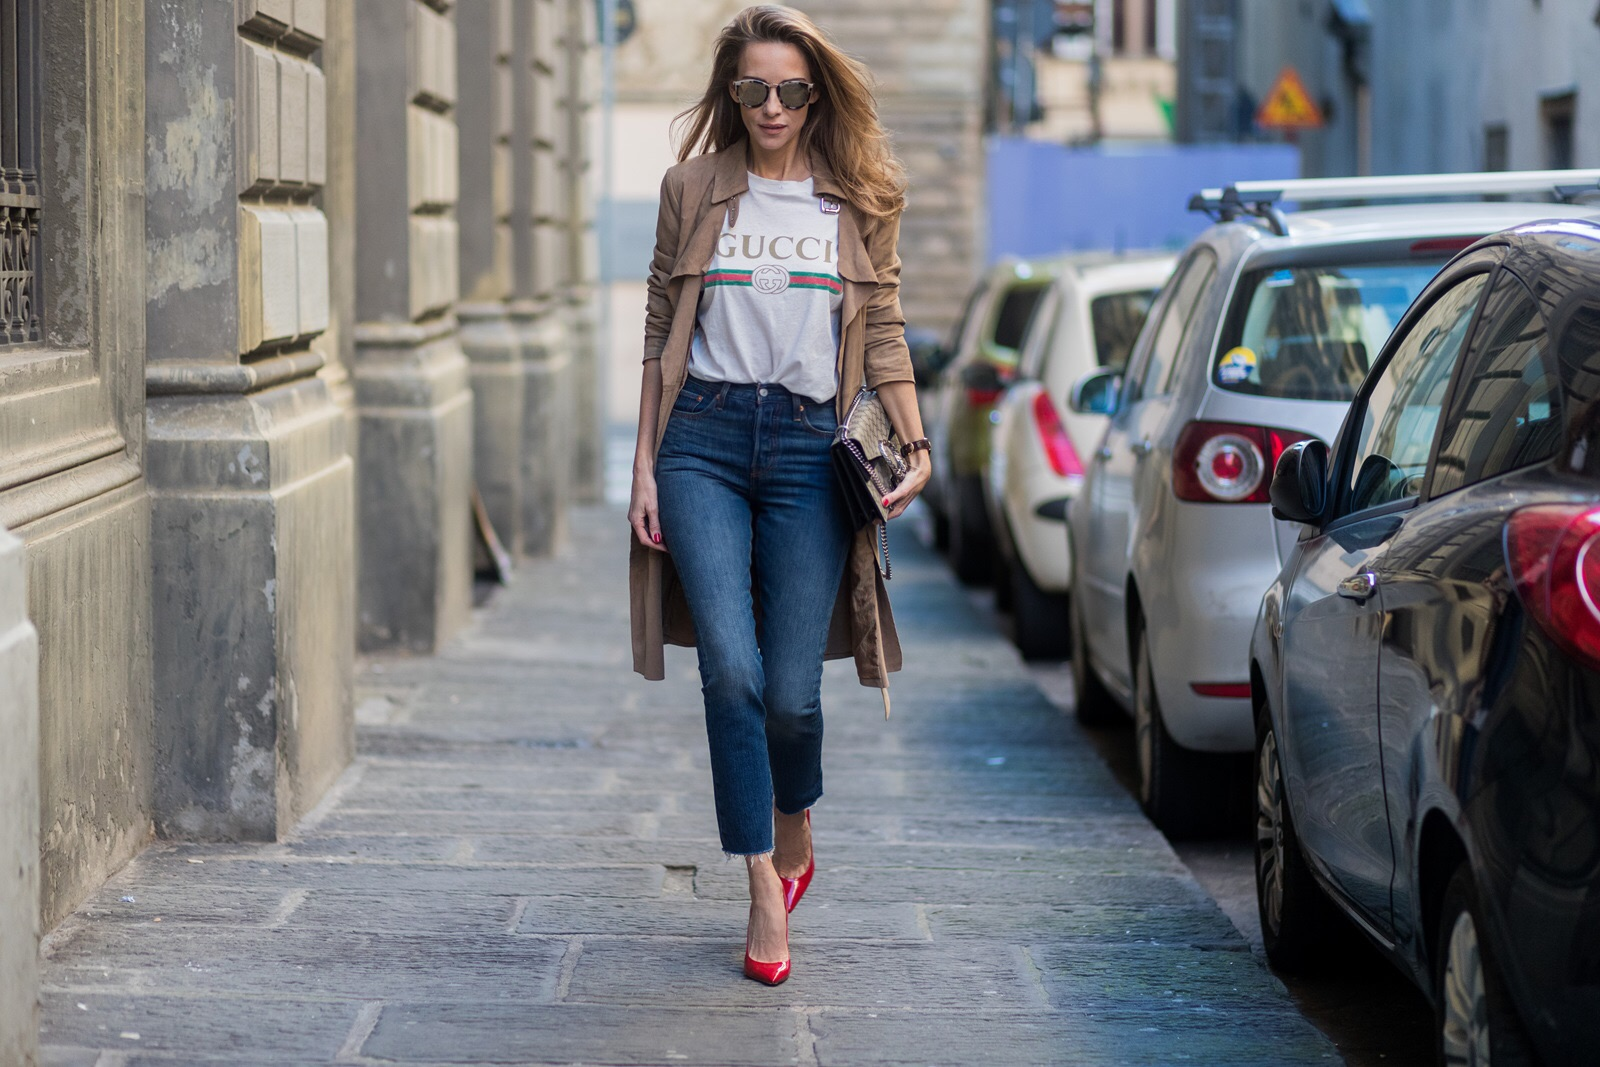 162692d7 FLORENCE, ITALY - JANUARY 11: German fashion blogger and model Alexandra  Lapp is wearing ...